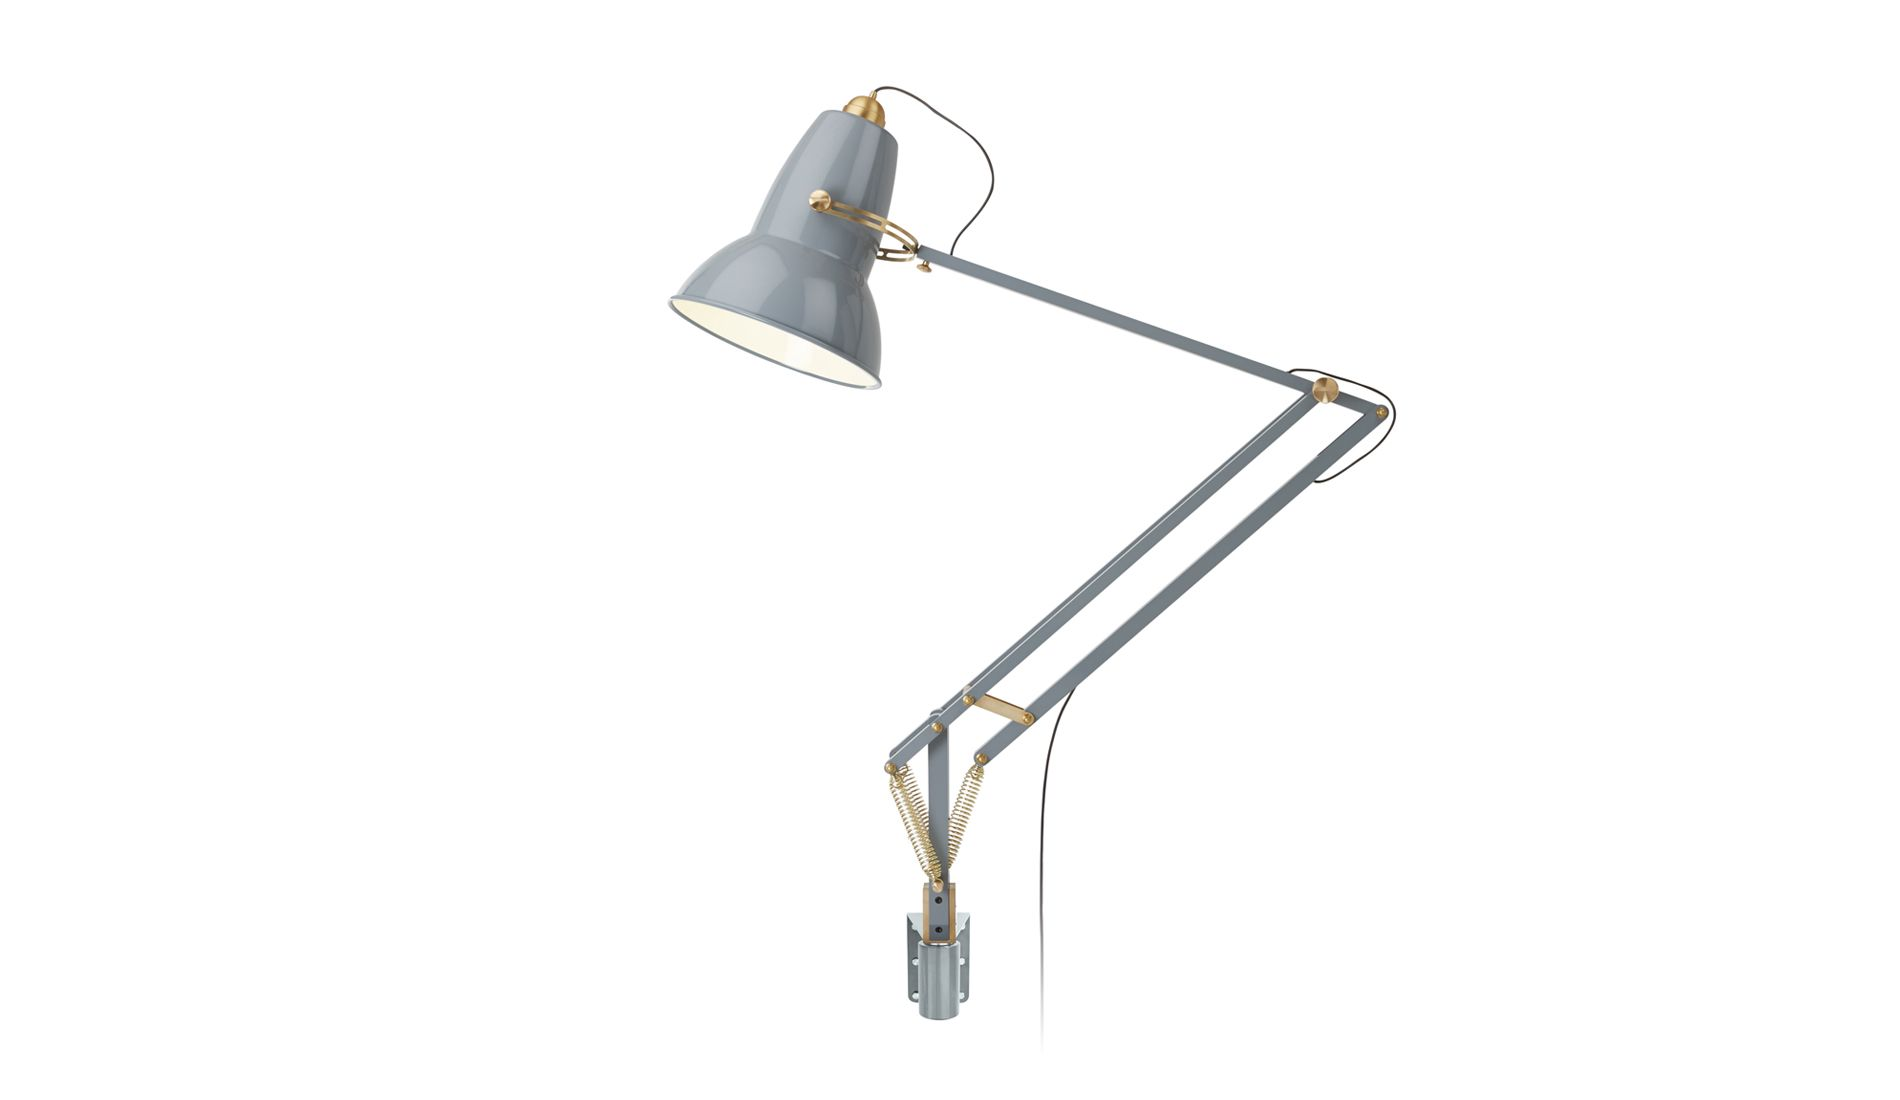 Nástěnná lampa Original 1227 Giant Messing Elefant Grey